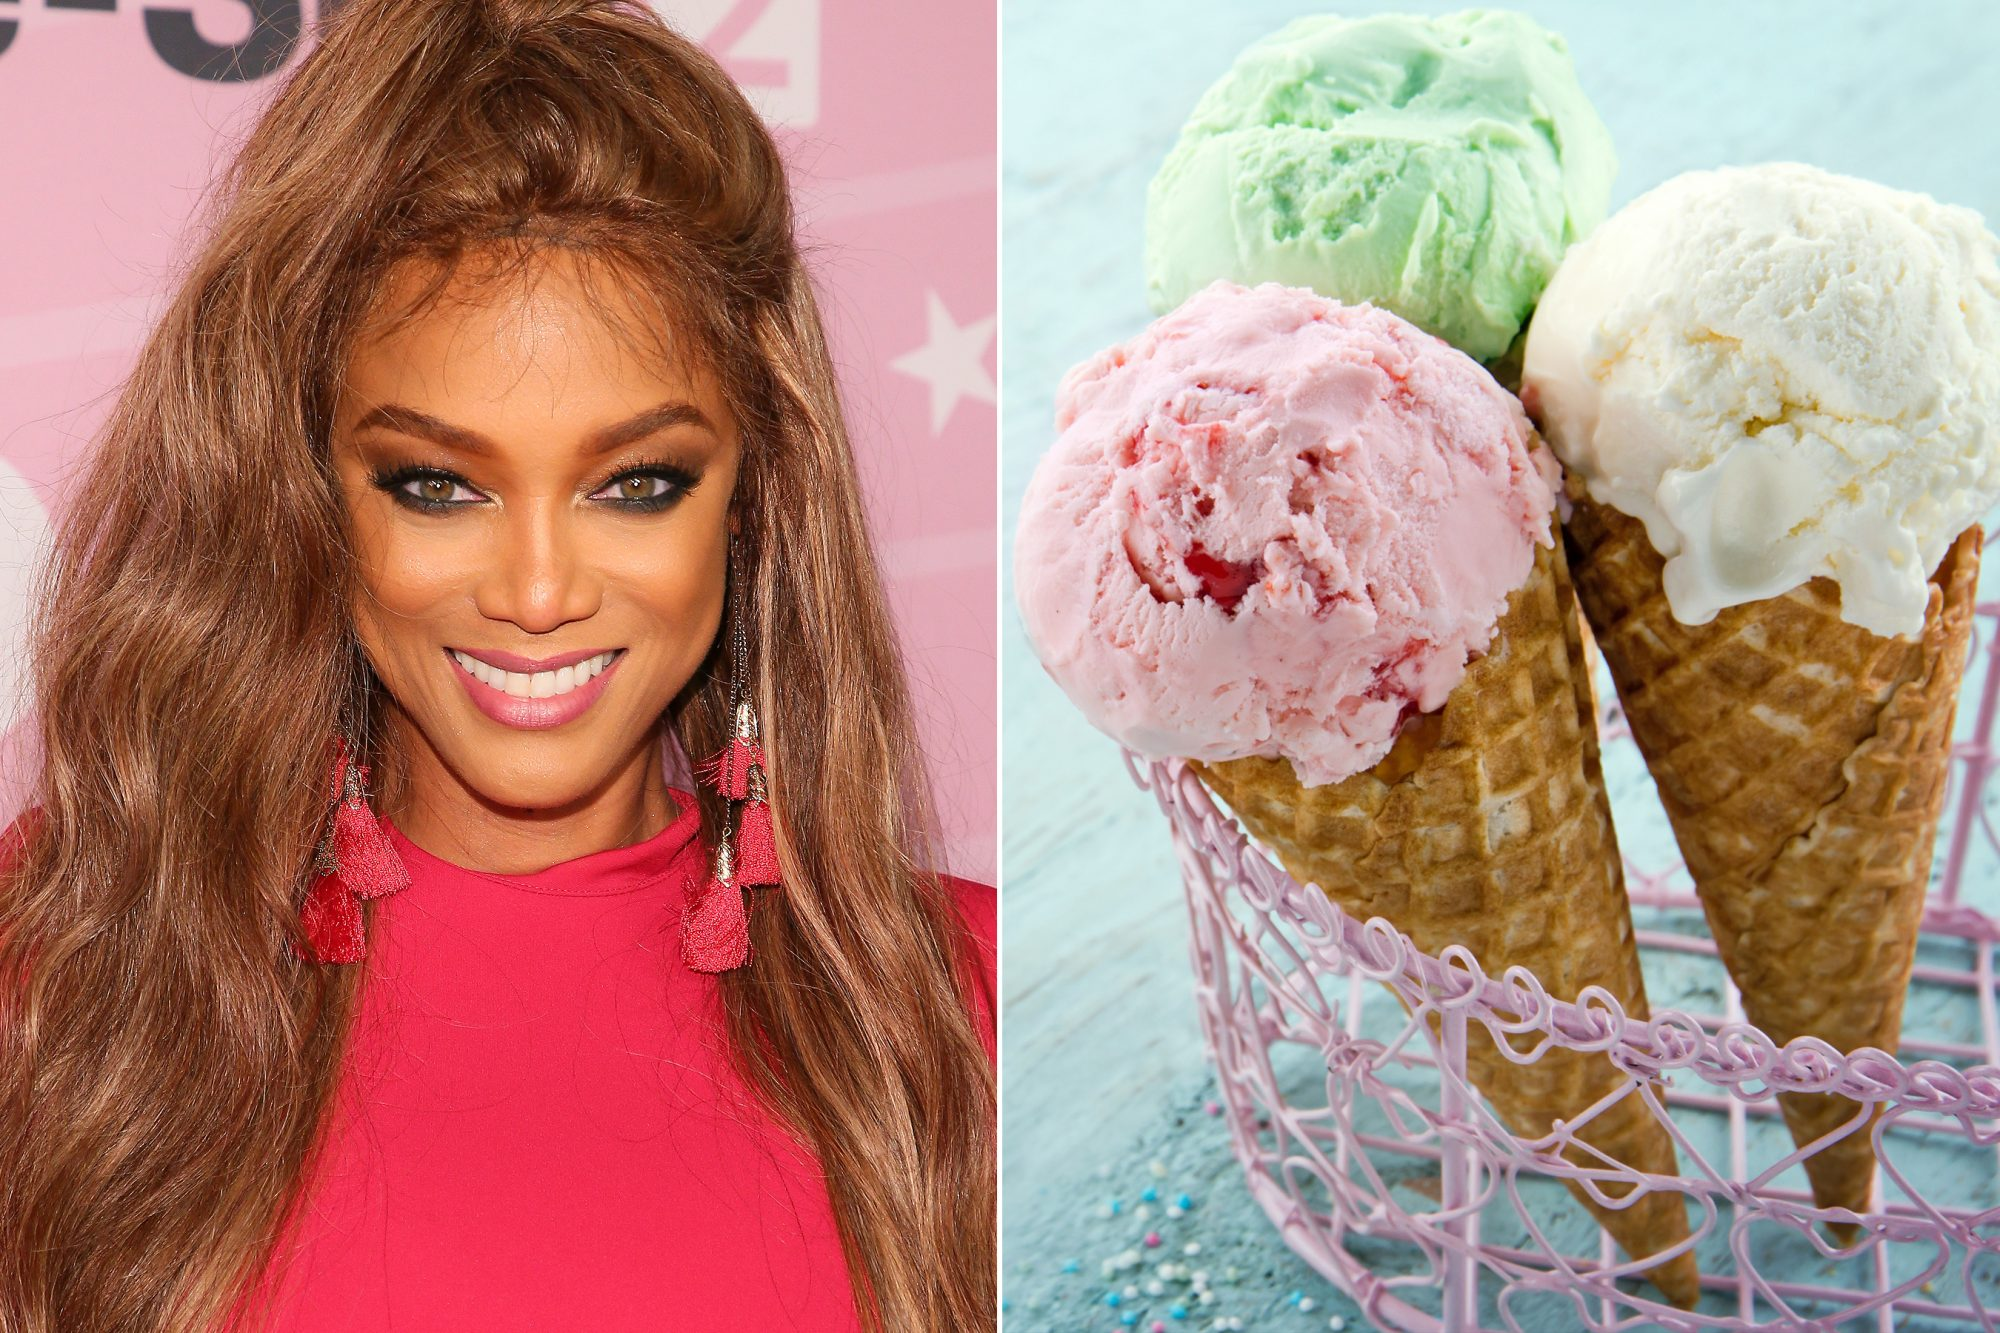 Tyra Banks Is Trying to Trademark 'Smize' Ice Cream